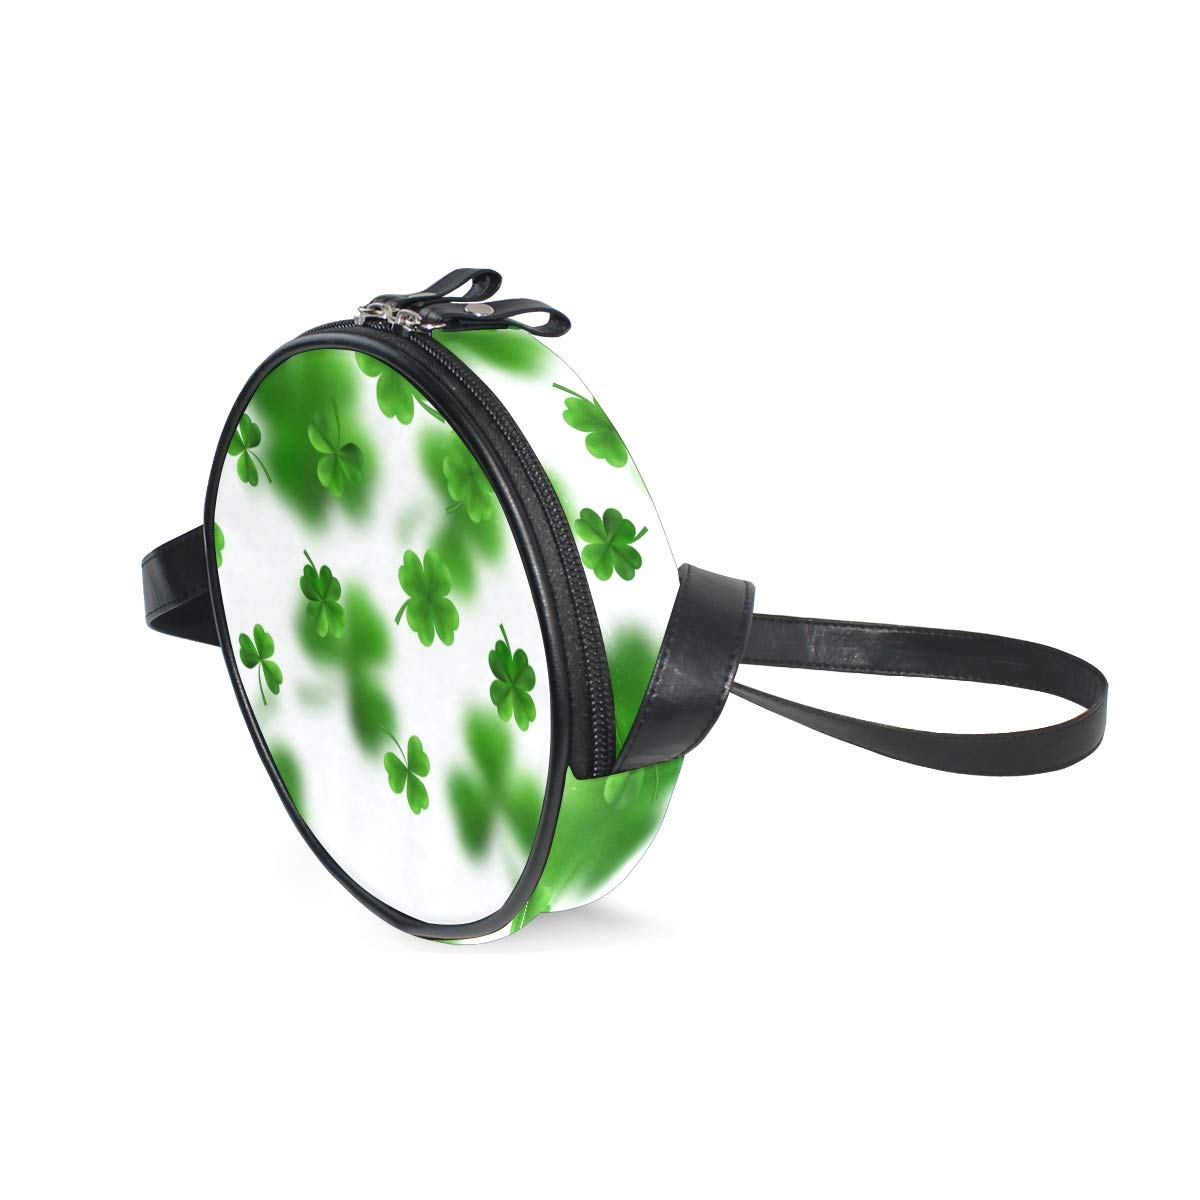 Patricks Day Green ShamrockSuper Cute Design Small Canvas Messenger Bags Shoulder Bag Round Crossbody Bags Purses for Little Girls Gifts Happy St